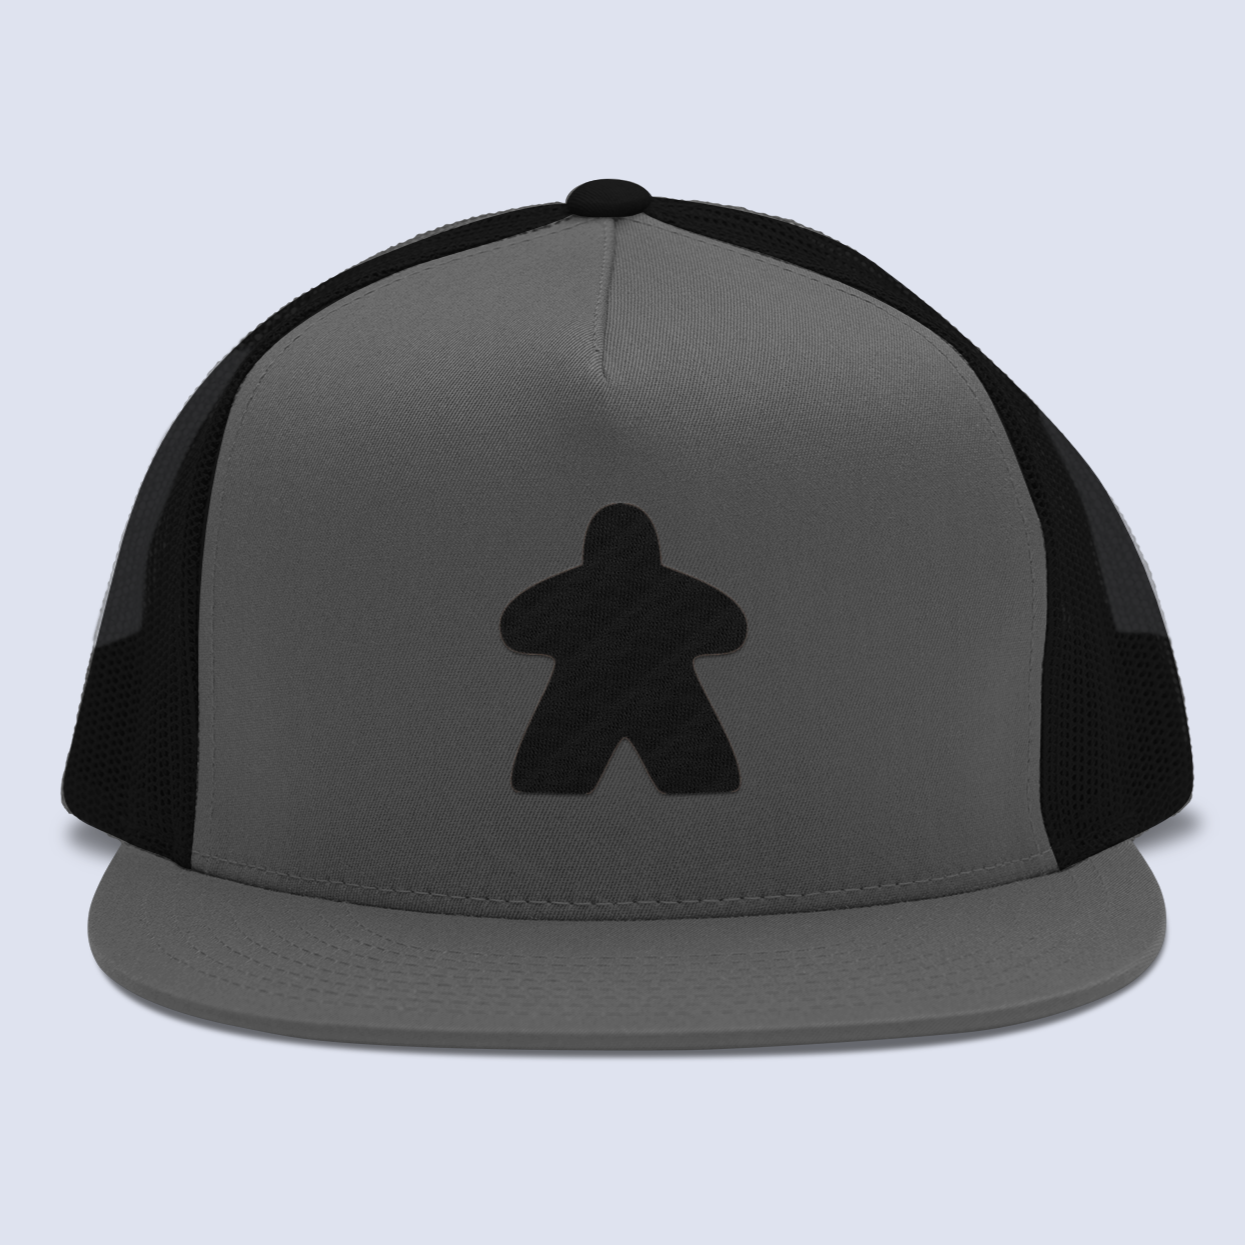 Black Meeple Board Game Flat Bill Trucker Hat